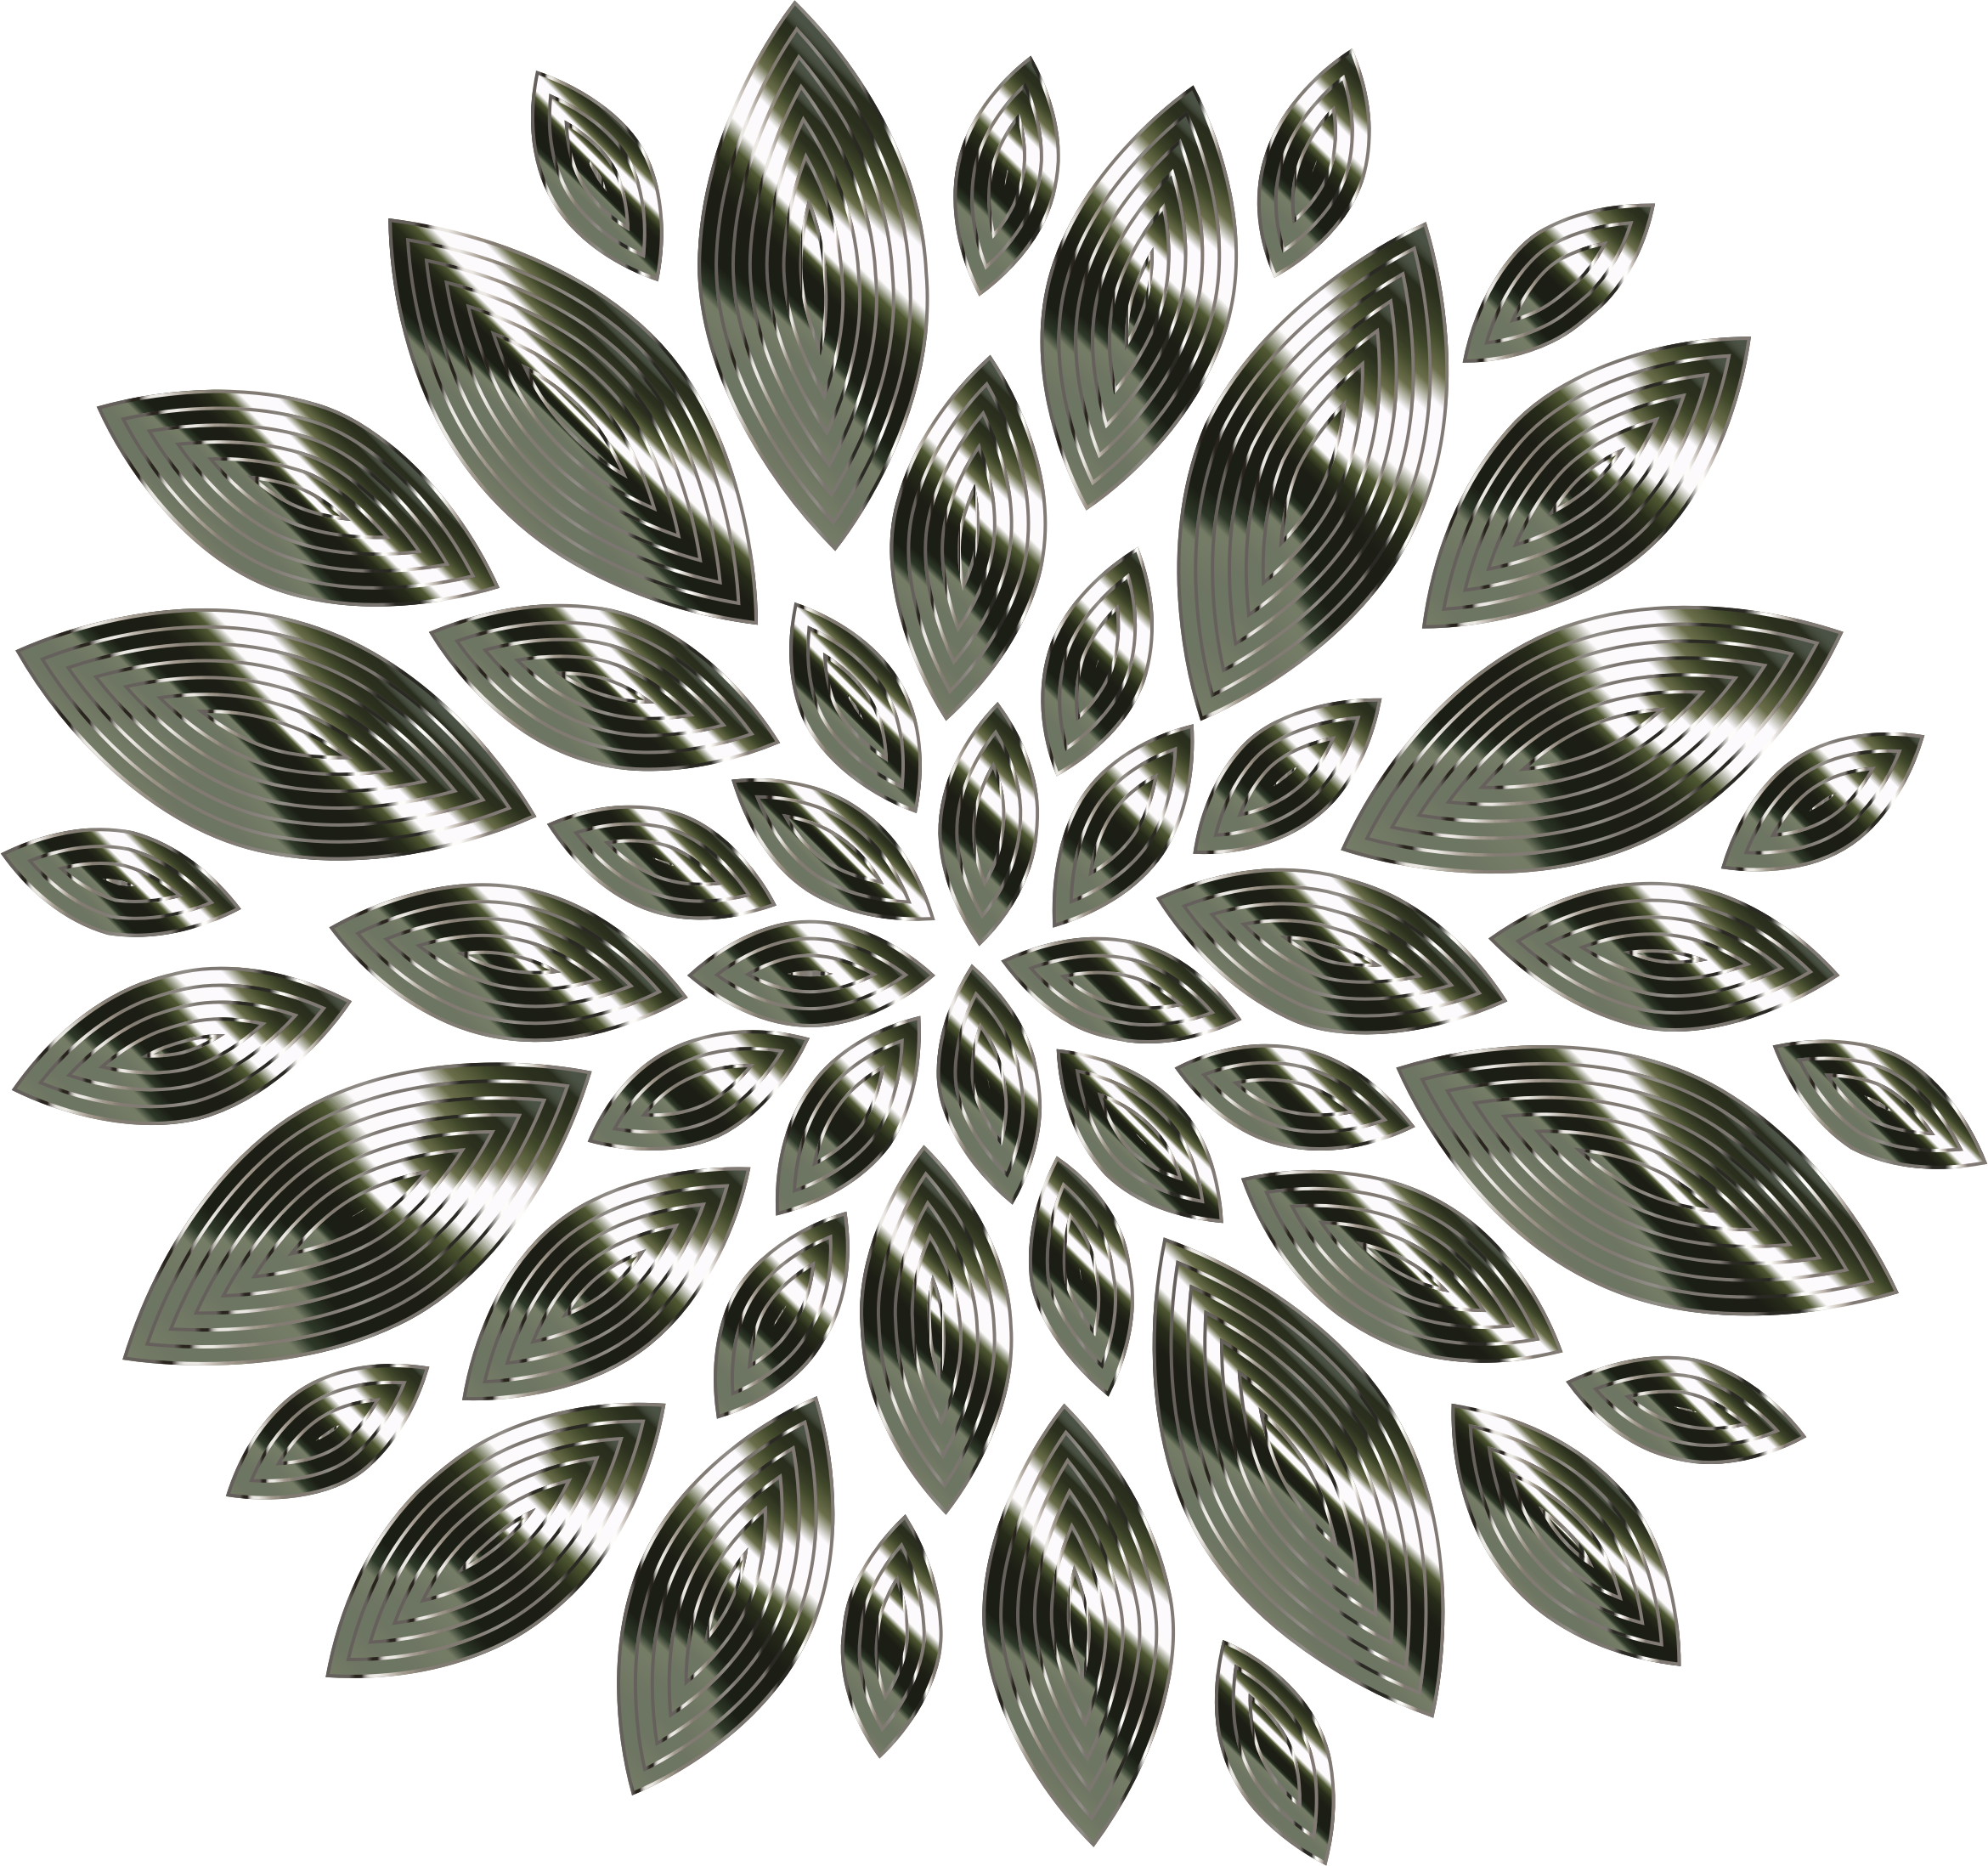 Chrome Flower Petals 2 by GDJ